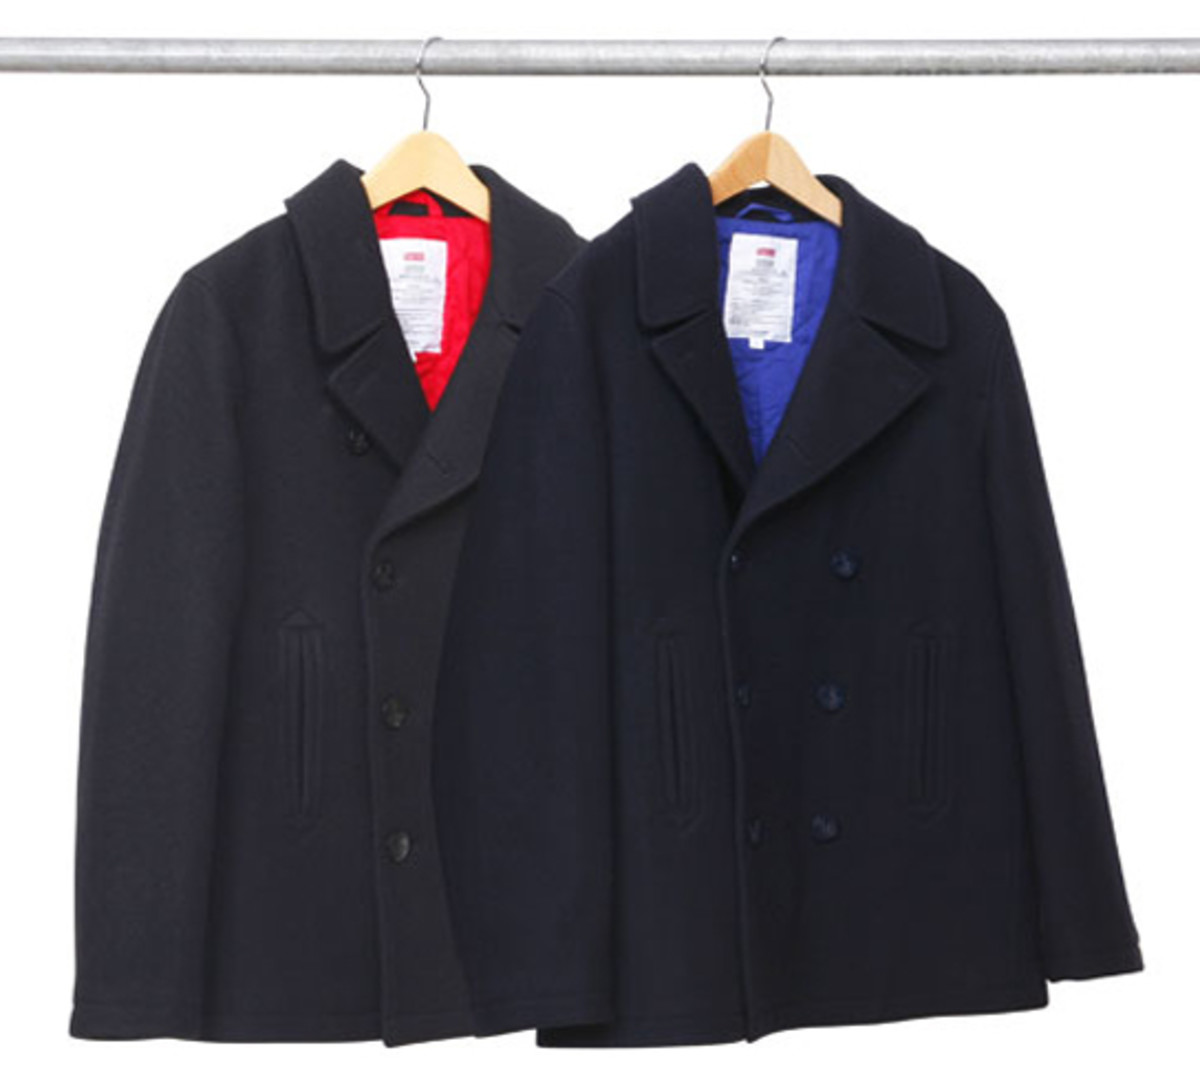 Supreme - Fall/Winter 2009 Collection - Wool Pea Coat